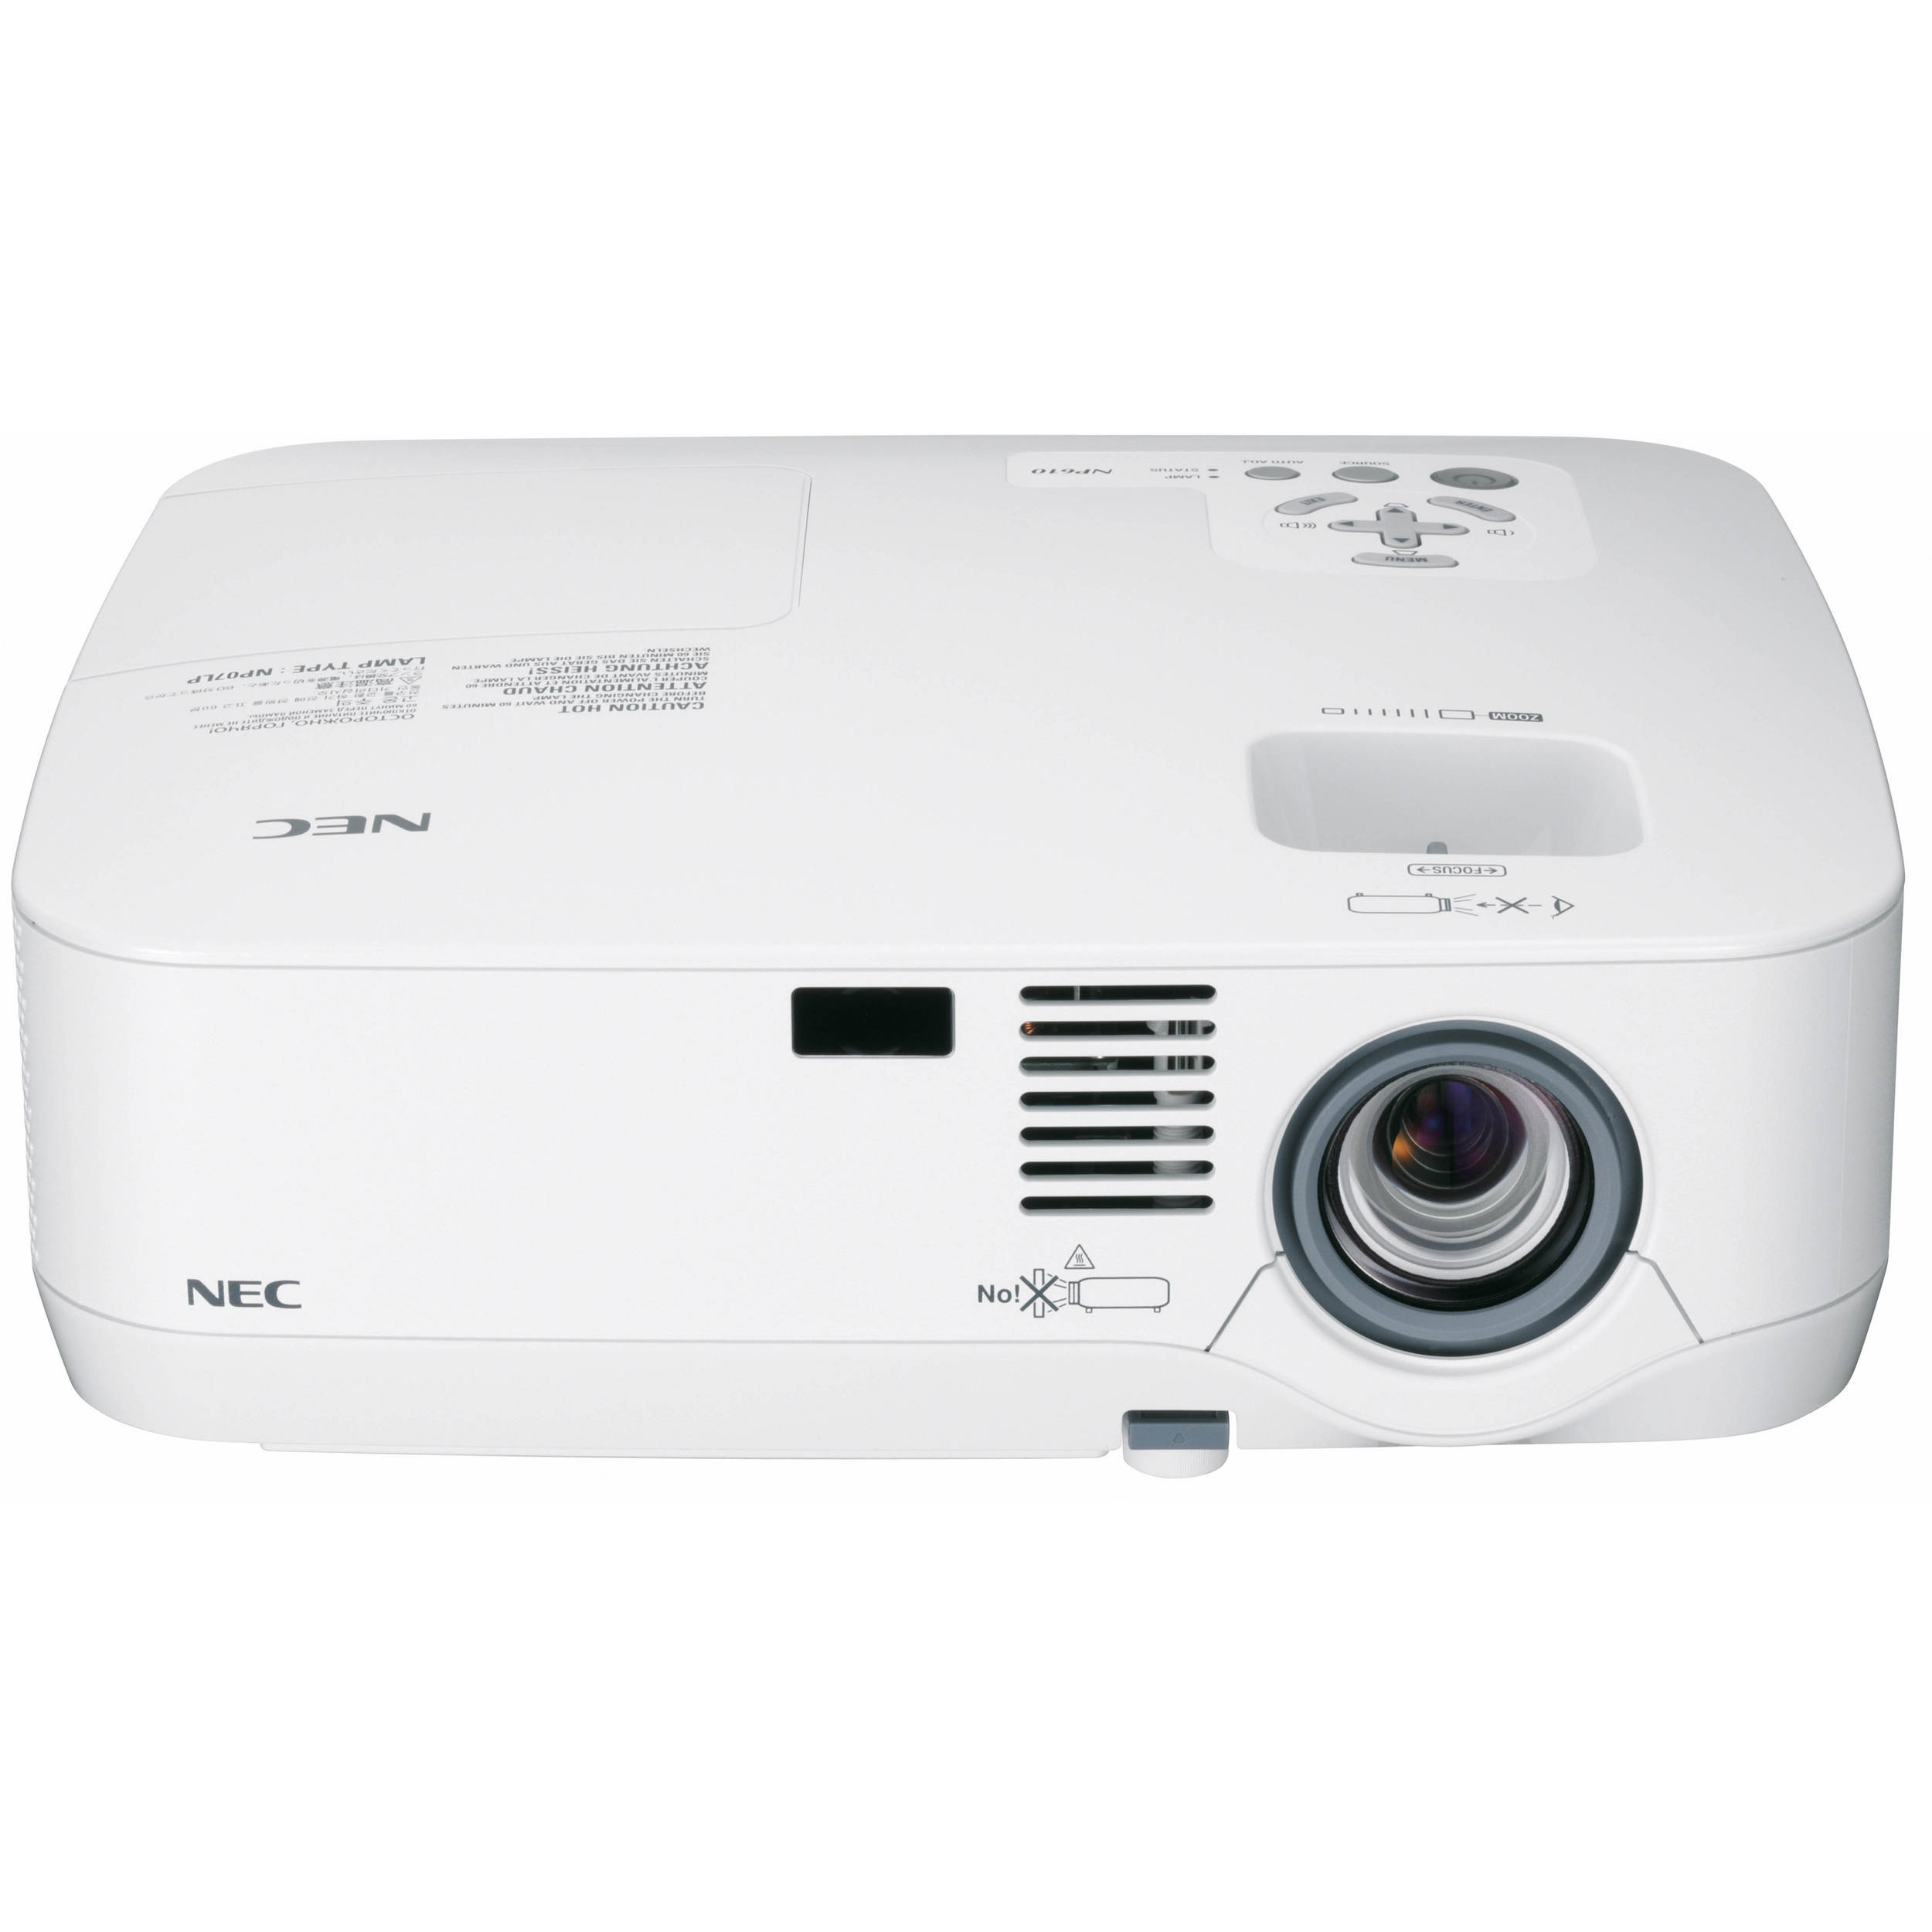 Nec np410w portable projector np410w b h photo video for Portable projector reviews